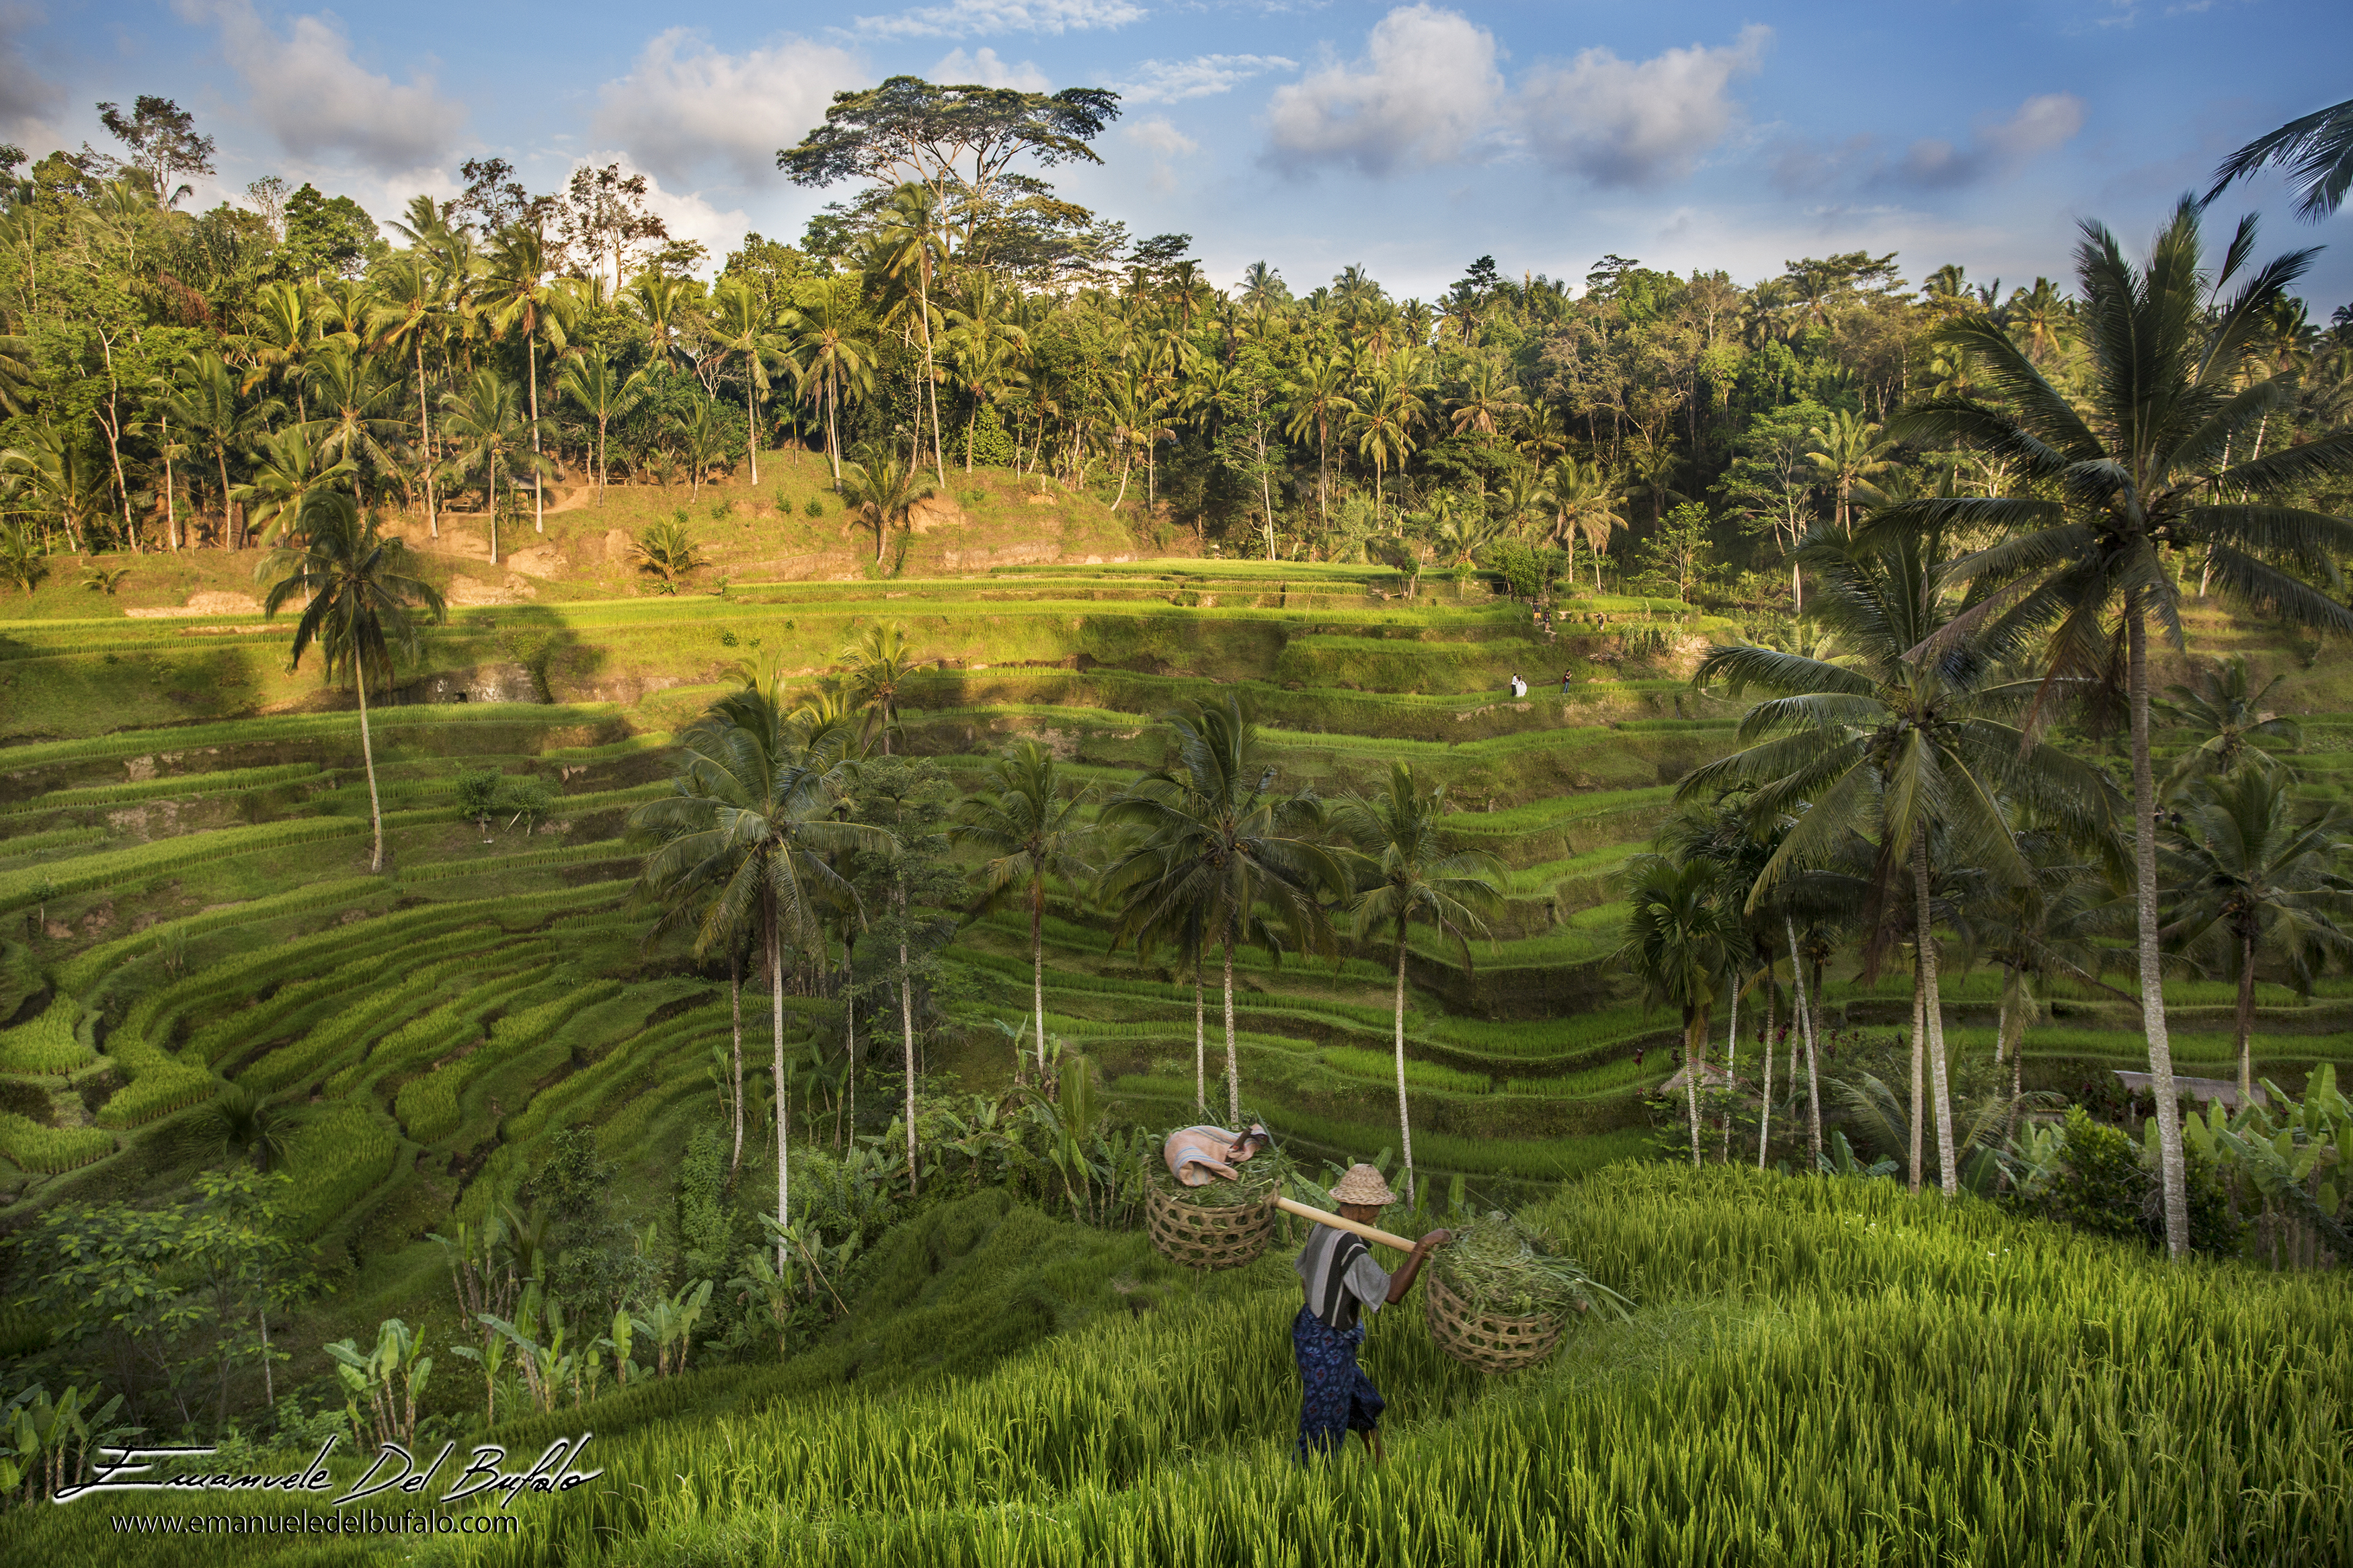 www.emanueledelbufalo.com #bali #indonesia #rice_field #terrace #green #sunset #man #landscape #UNES